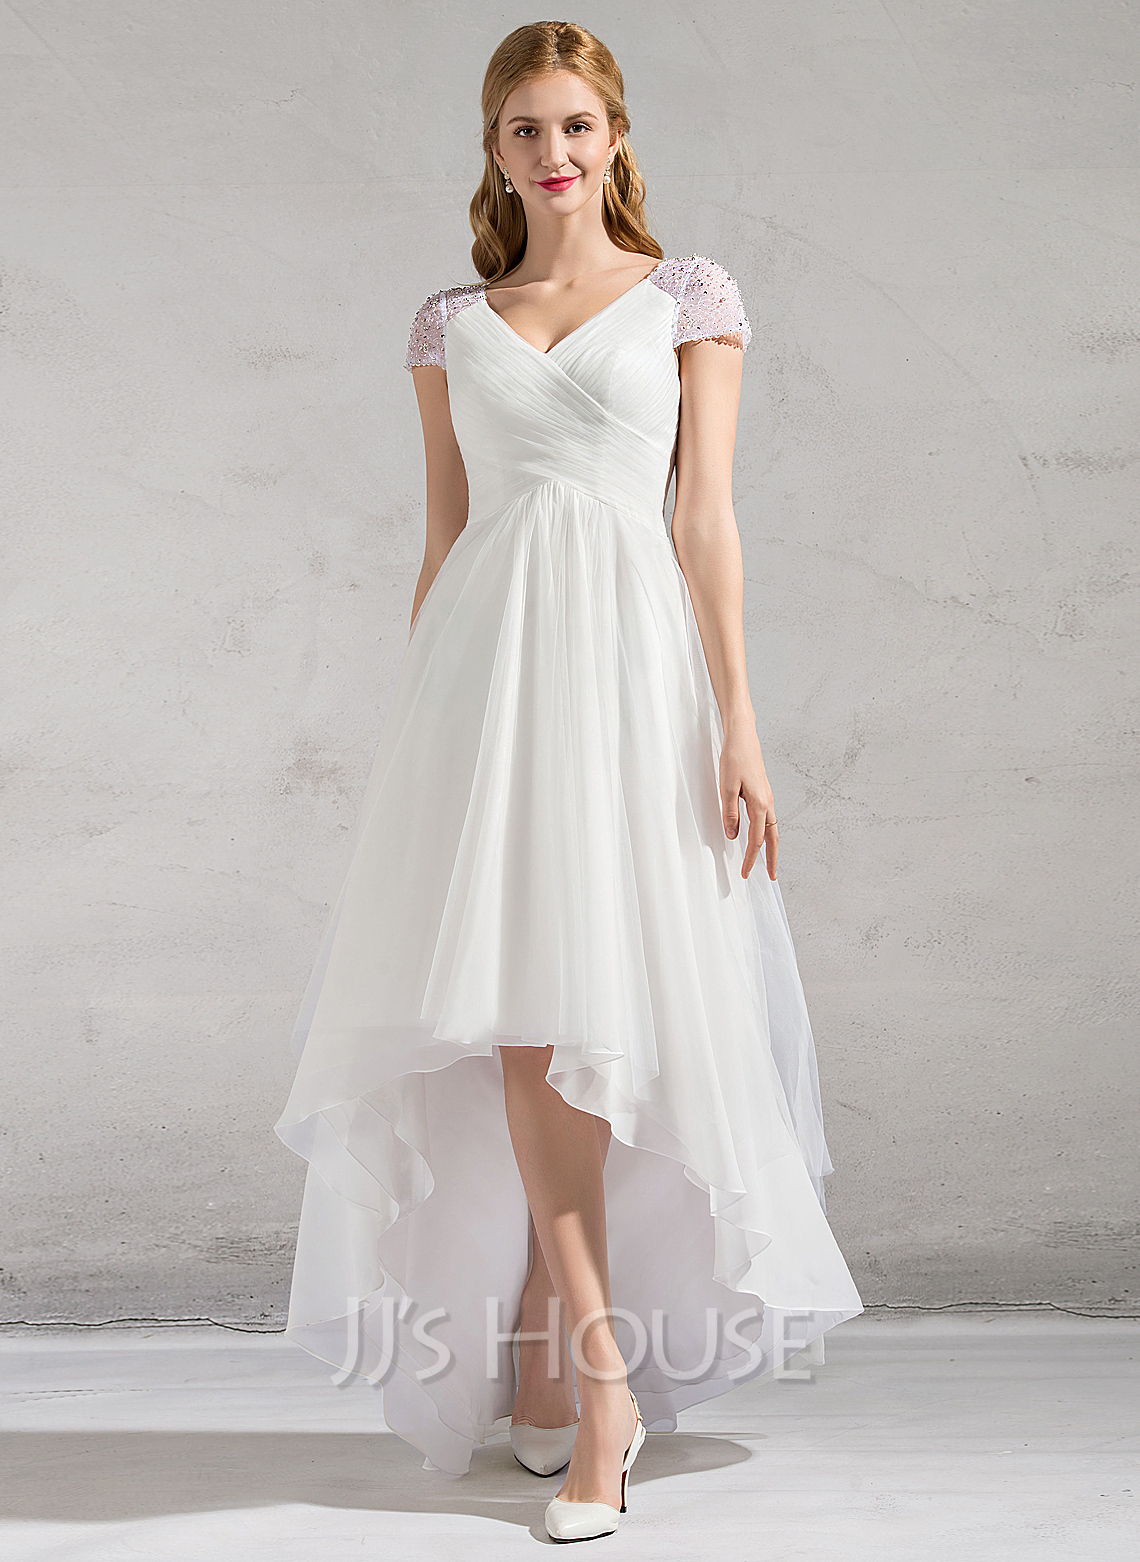 Cheap Wedding Dresses c2 wedding dress under $ A Line Princess V neck Asymmetrical Tulle Wedding Dress With Ruffle Beading Sequins